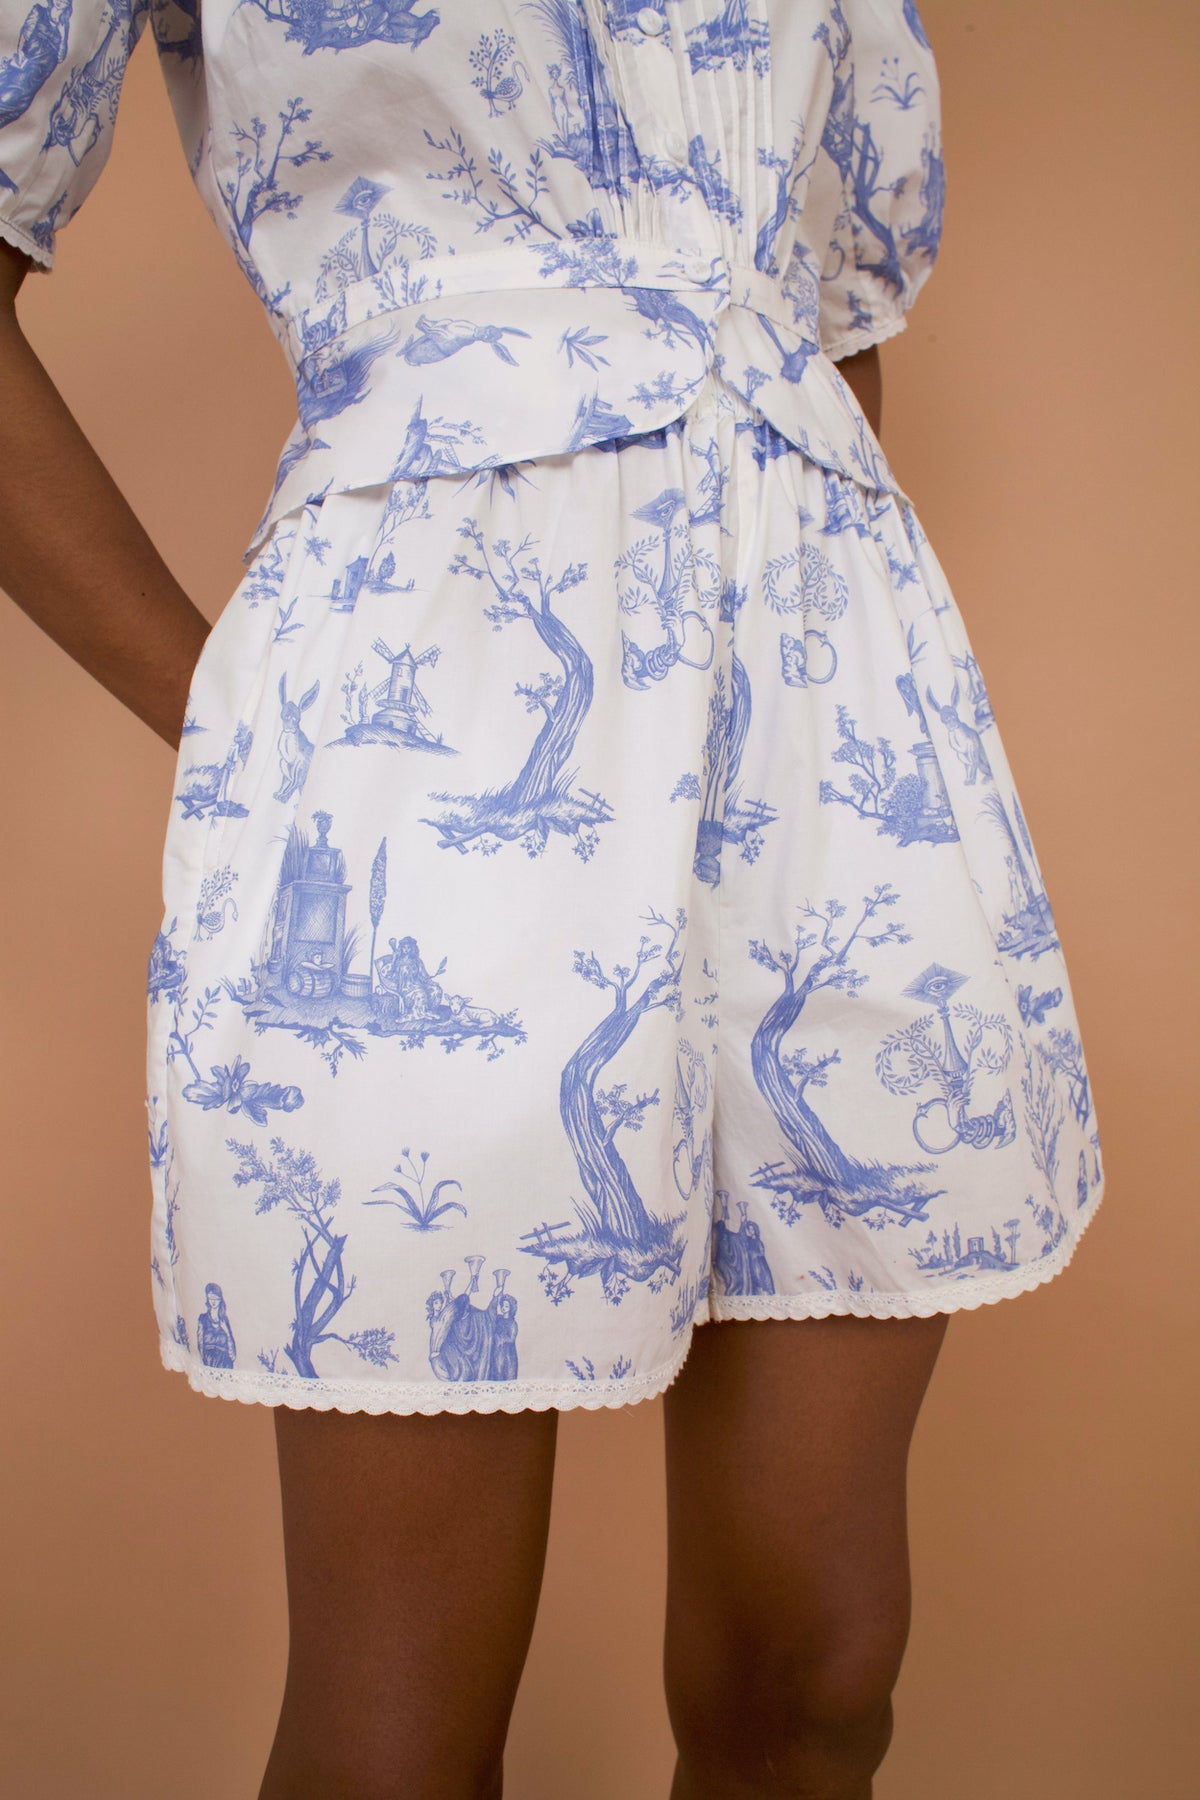 Meadows Caspia Shorts in Toile de Jouy